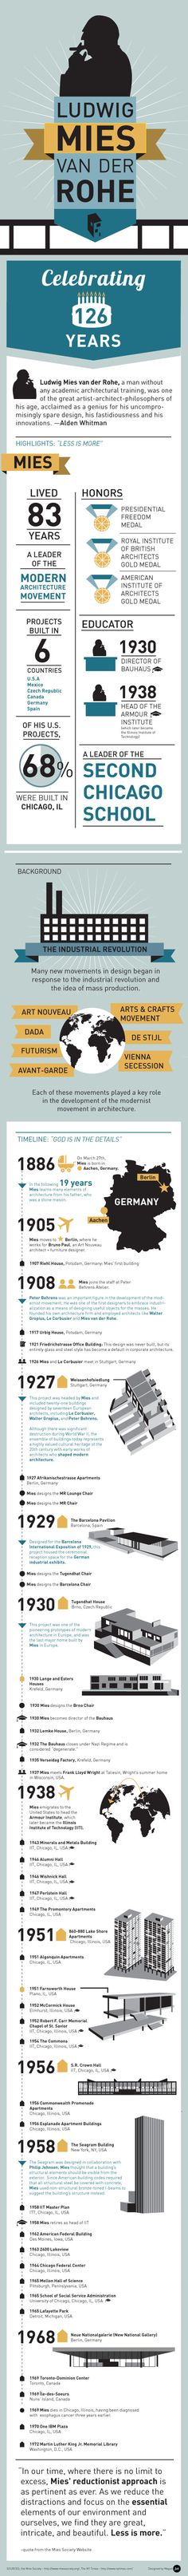 Celebrating Mies van der Rohe, Archdaily Infographic